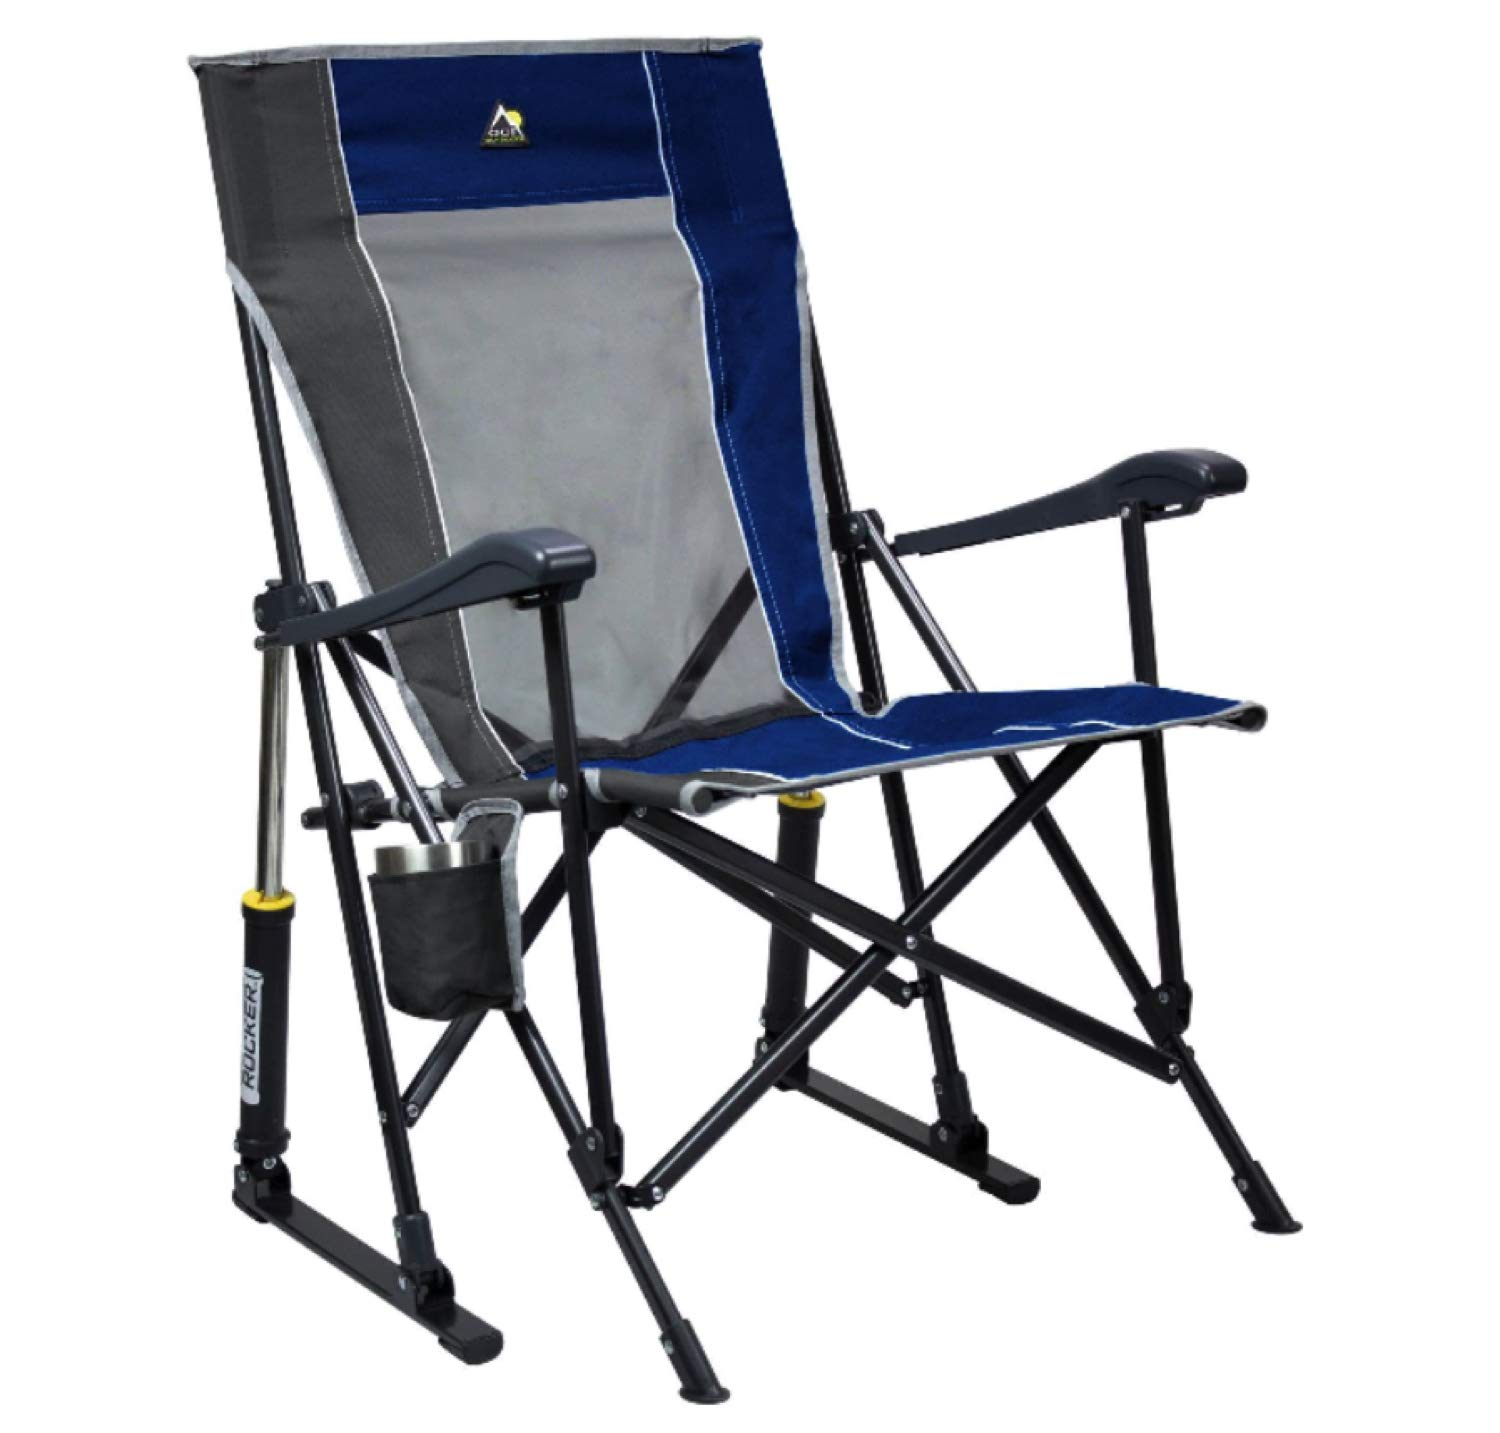 GCI Roadtrip Rocking Chair Outdoor (Royal Blue/Pewter) by GCI